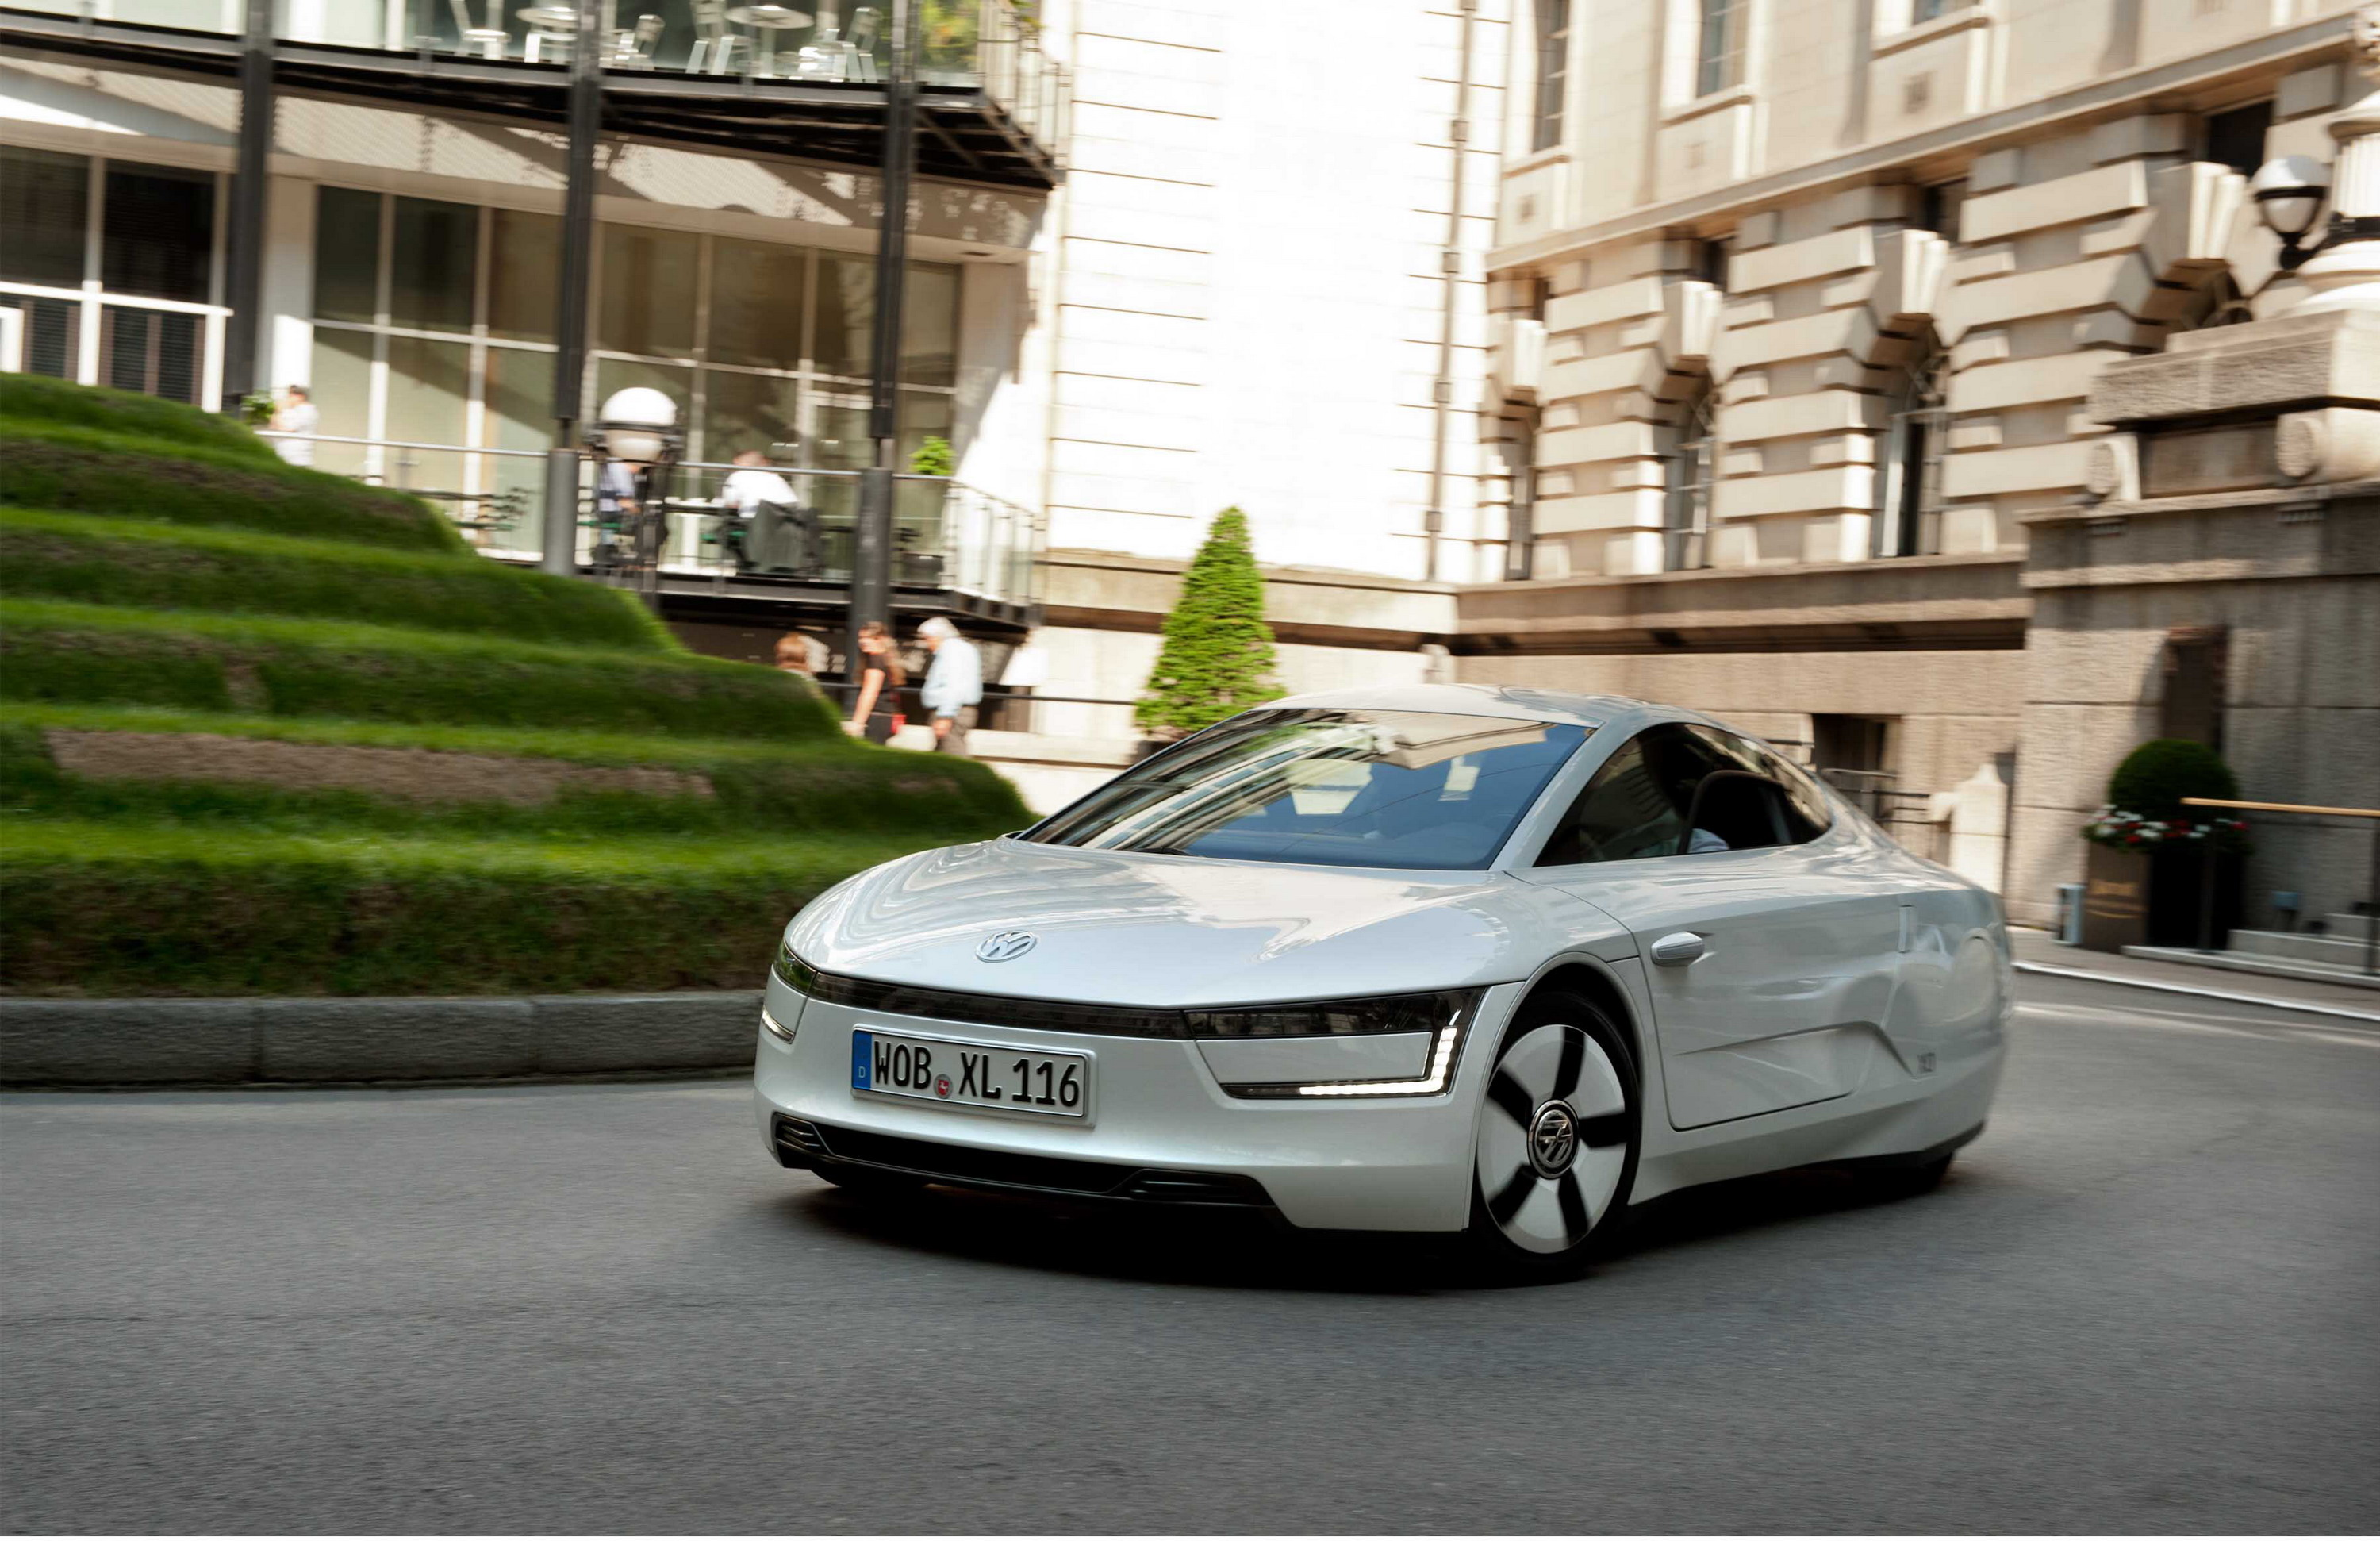 Volkswagen XL1 News And Reviews | Top Speed